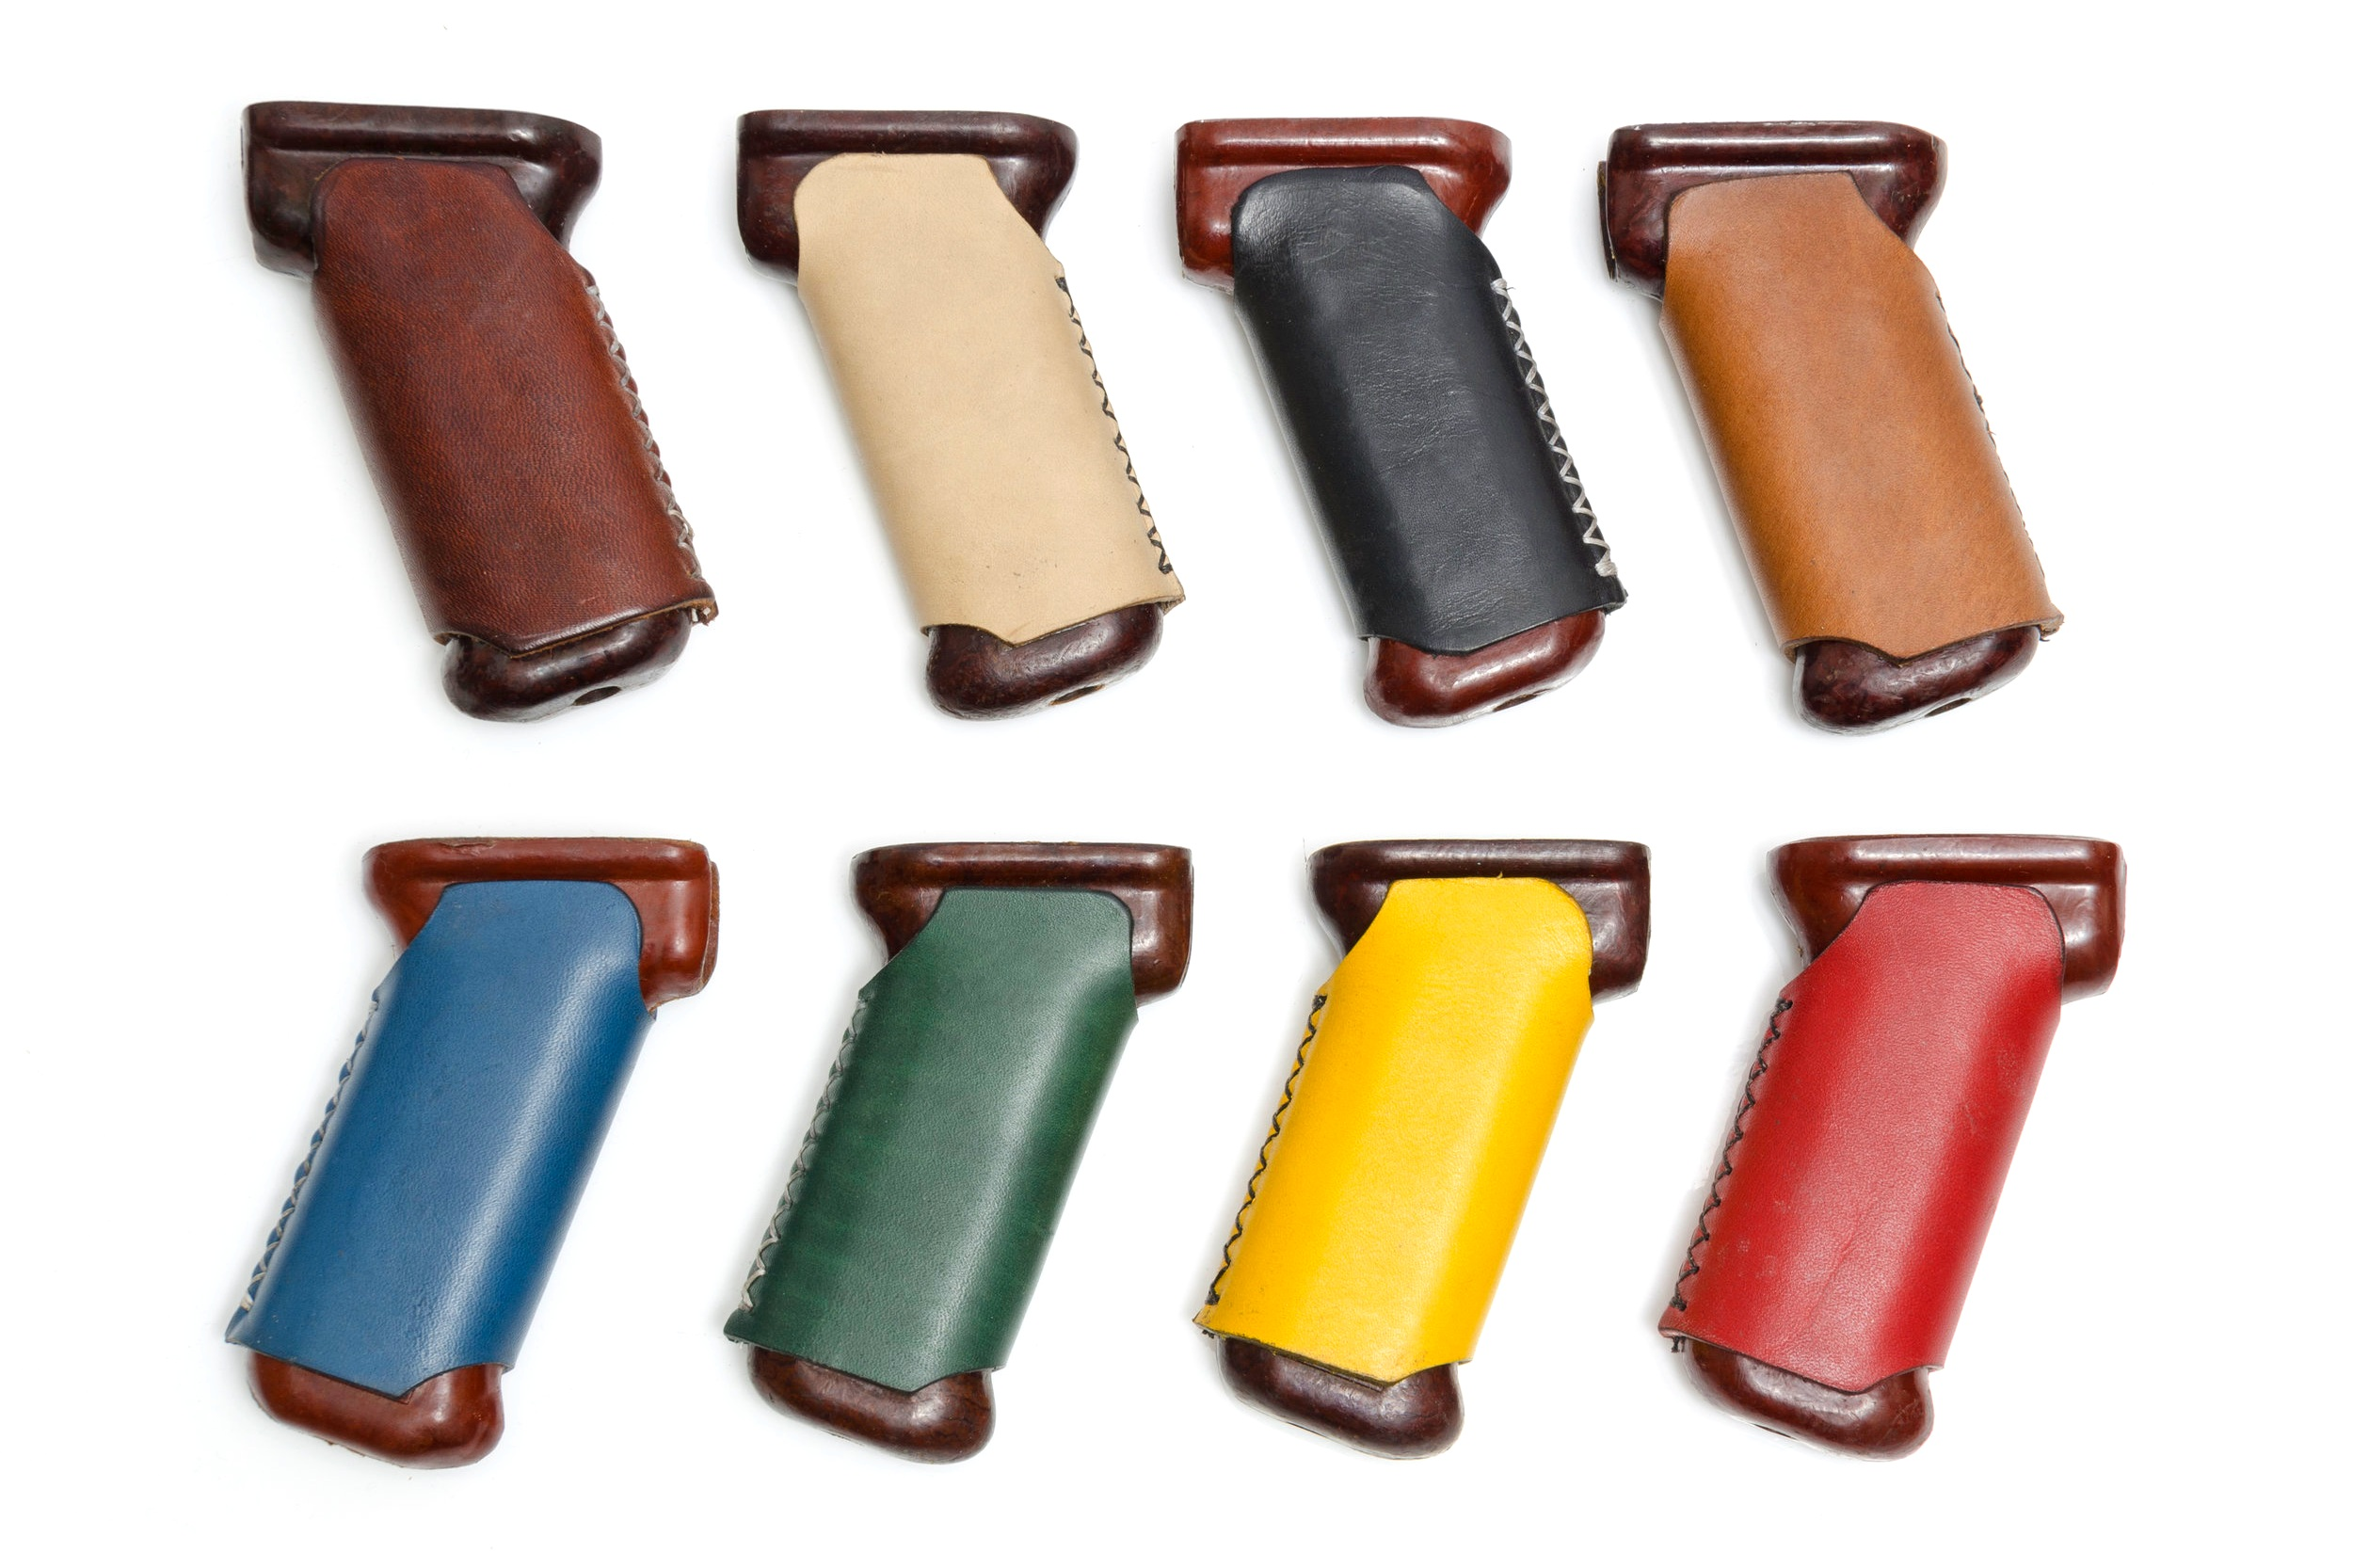 Leather Wrapped AK Bakelite Grips